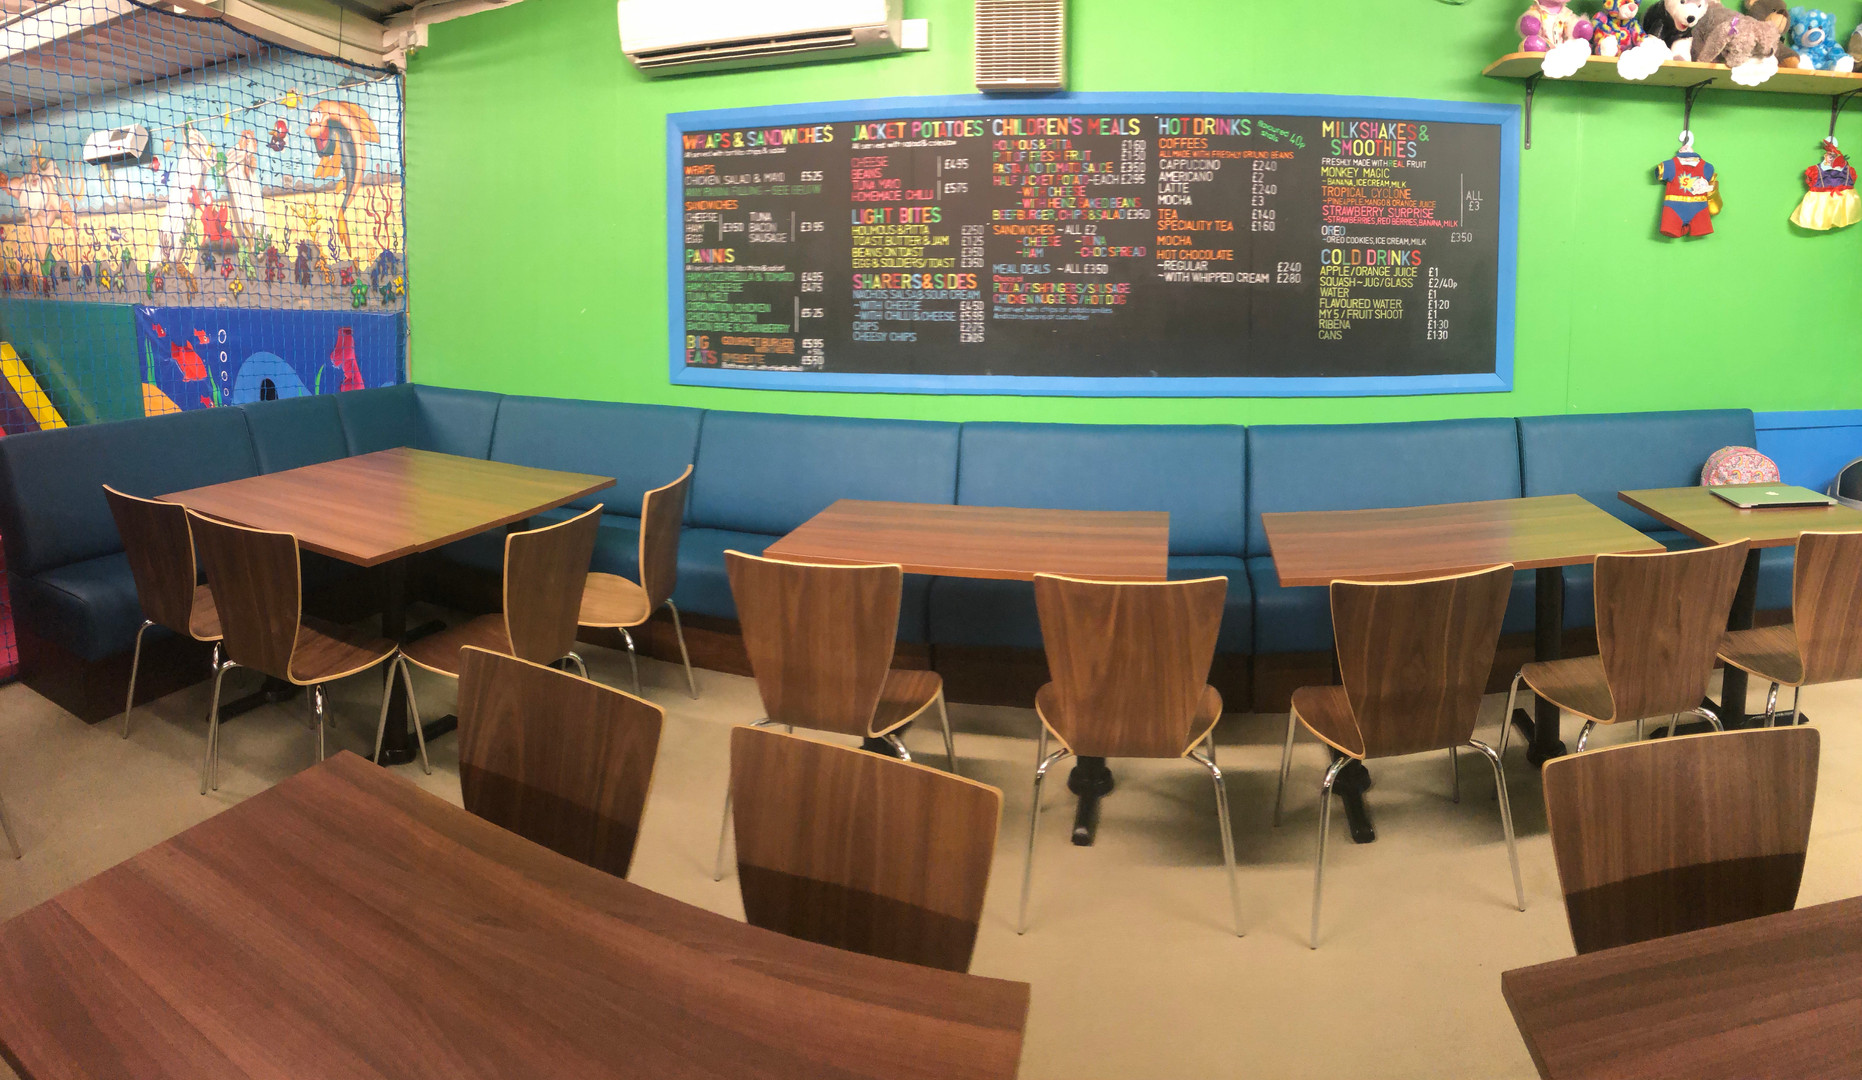 New banquette seating Panoramic